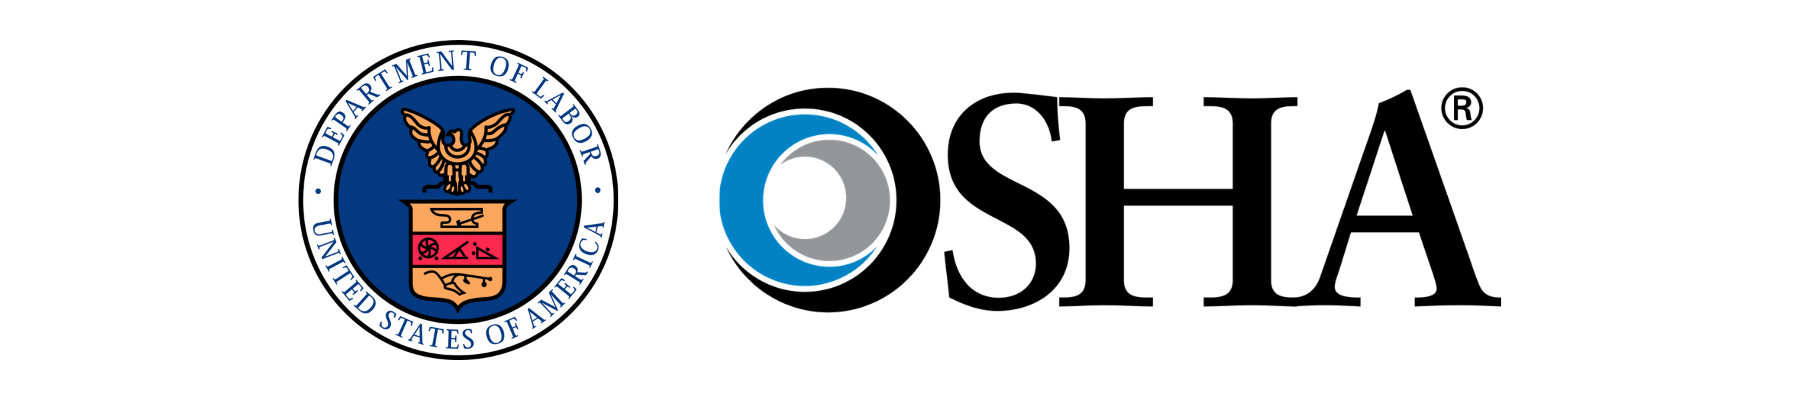 Department of Labor and OSHA logos